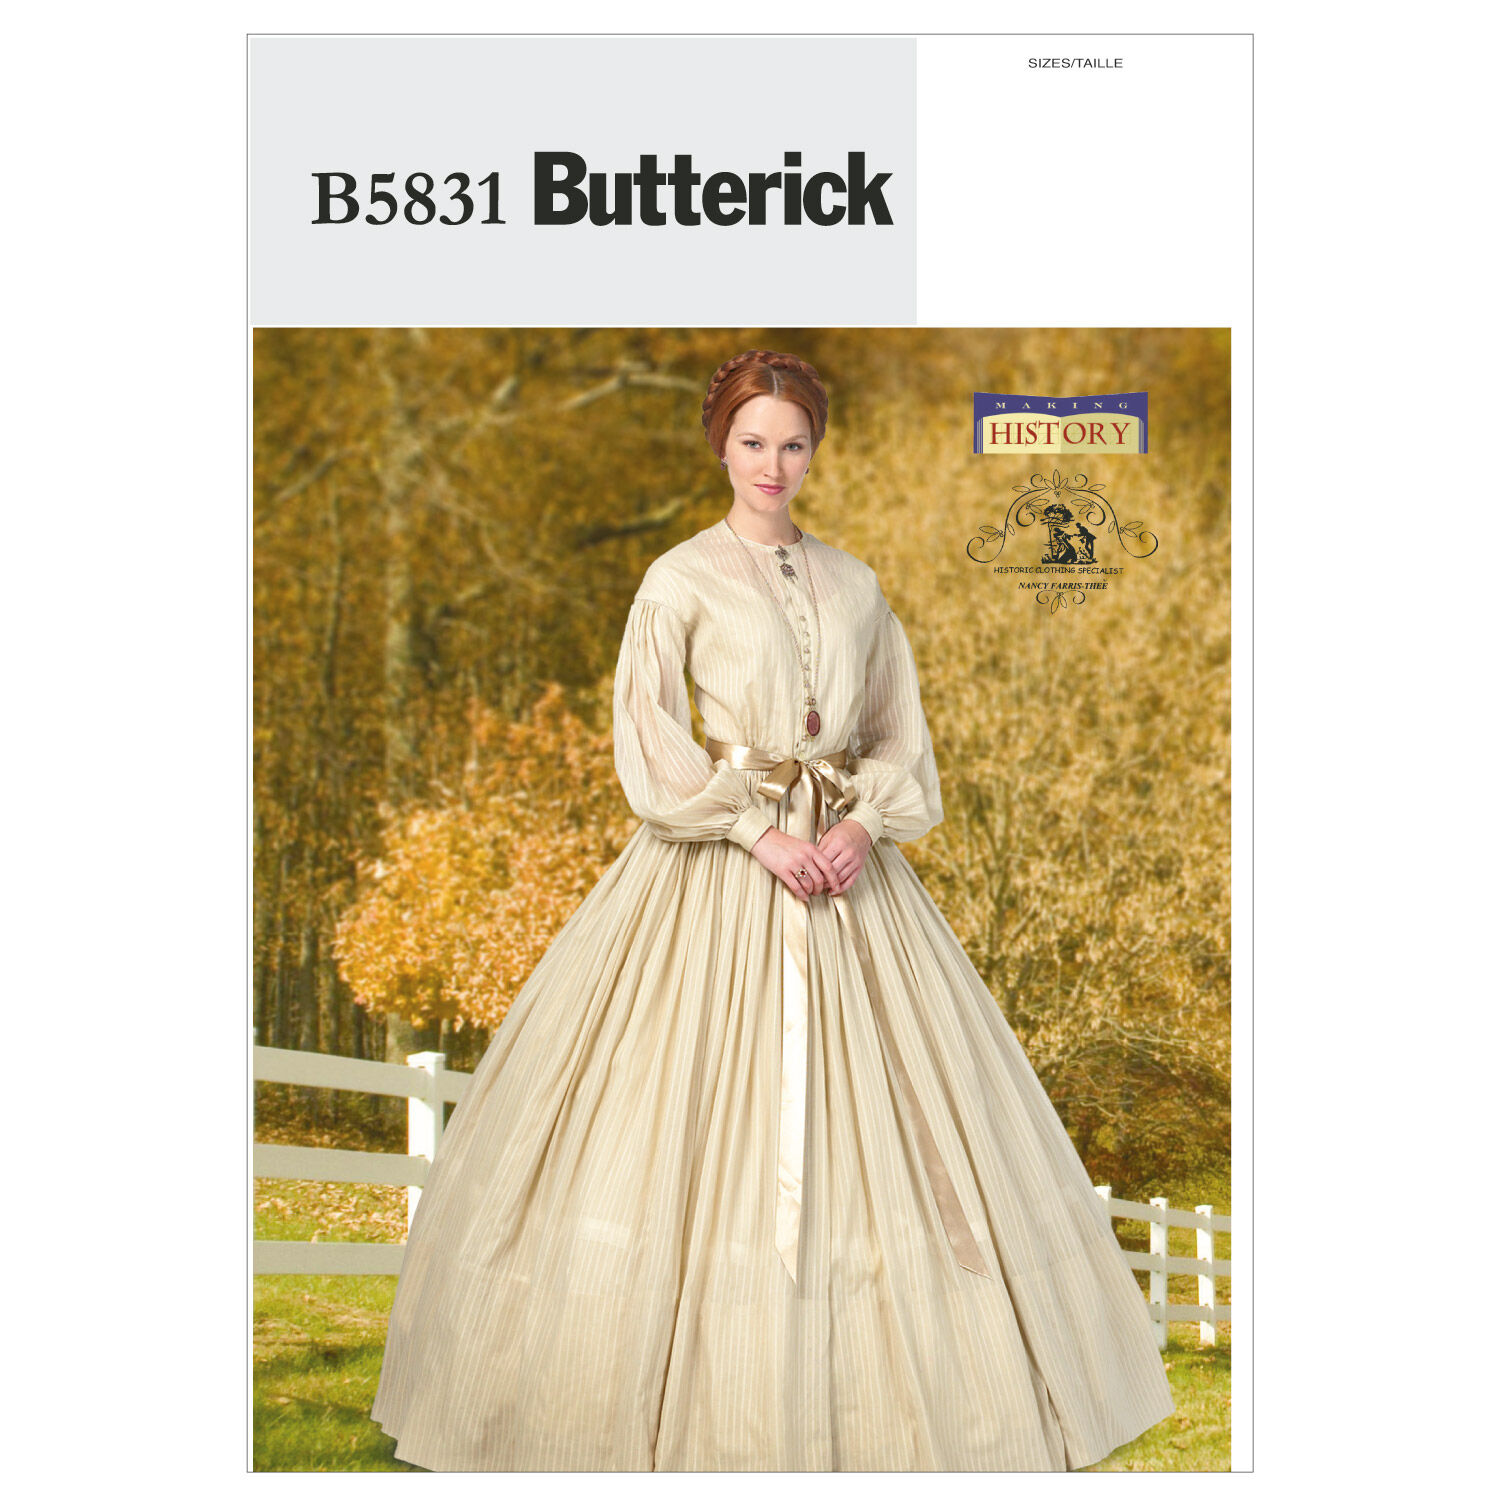 Steampunk Sewing Patterns- Dresses, Coats, Plus Sizes, Men's Patterns Butterick Misses Historical Costumes - B5831 $11.97 AT vintagedancer.com